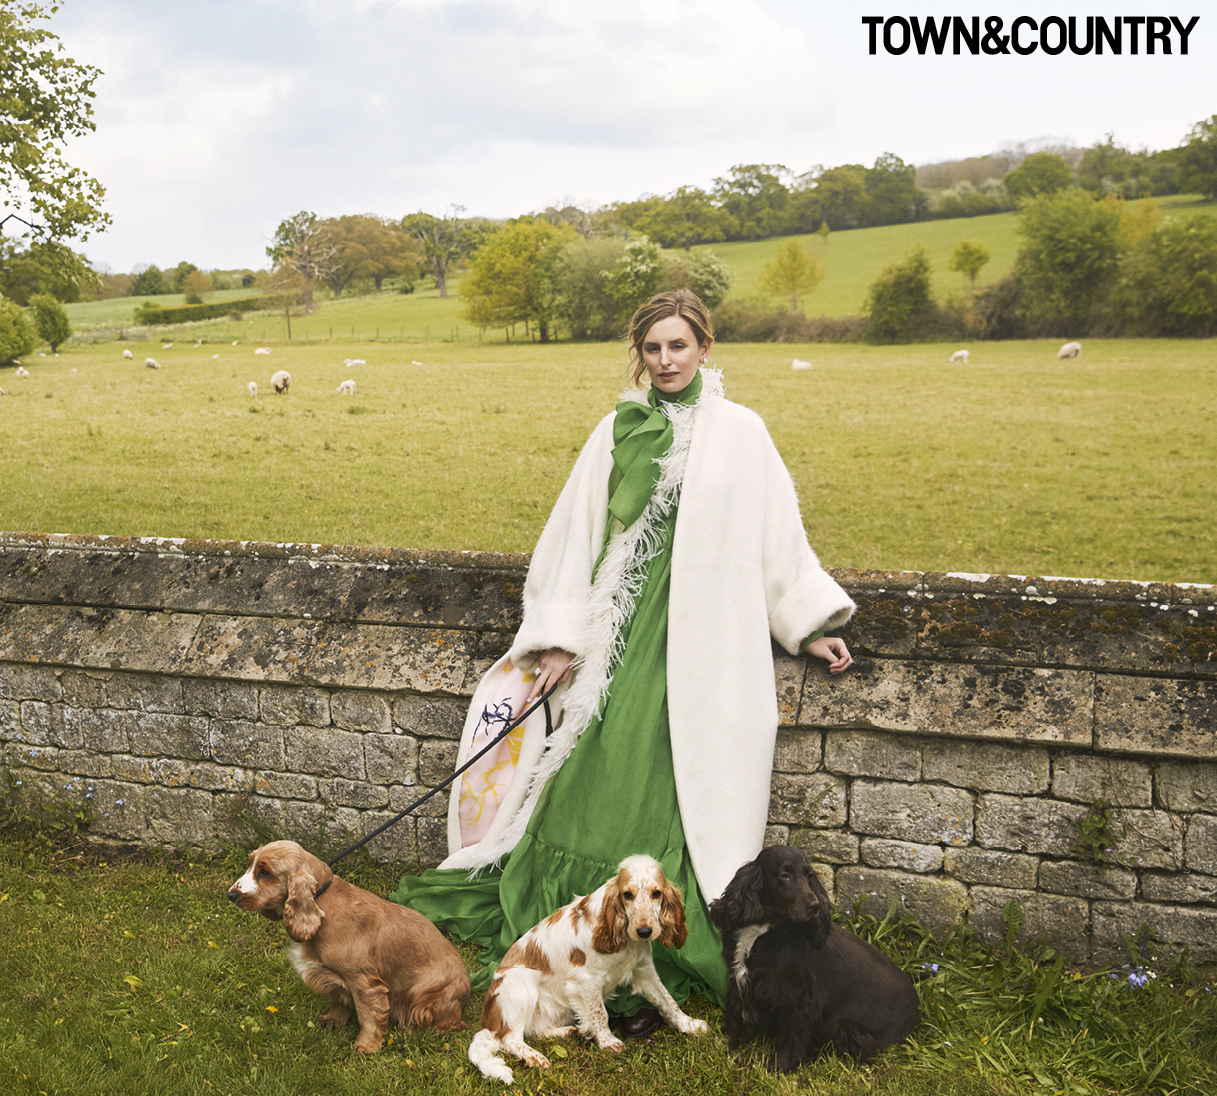 Laura Carmichael in Town & Country magazine